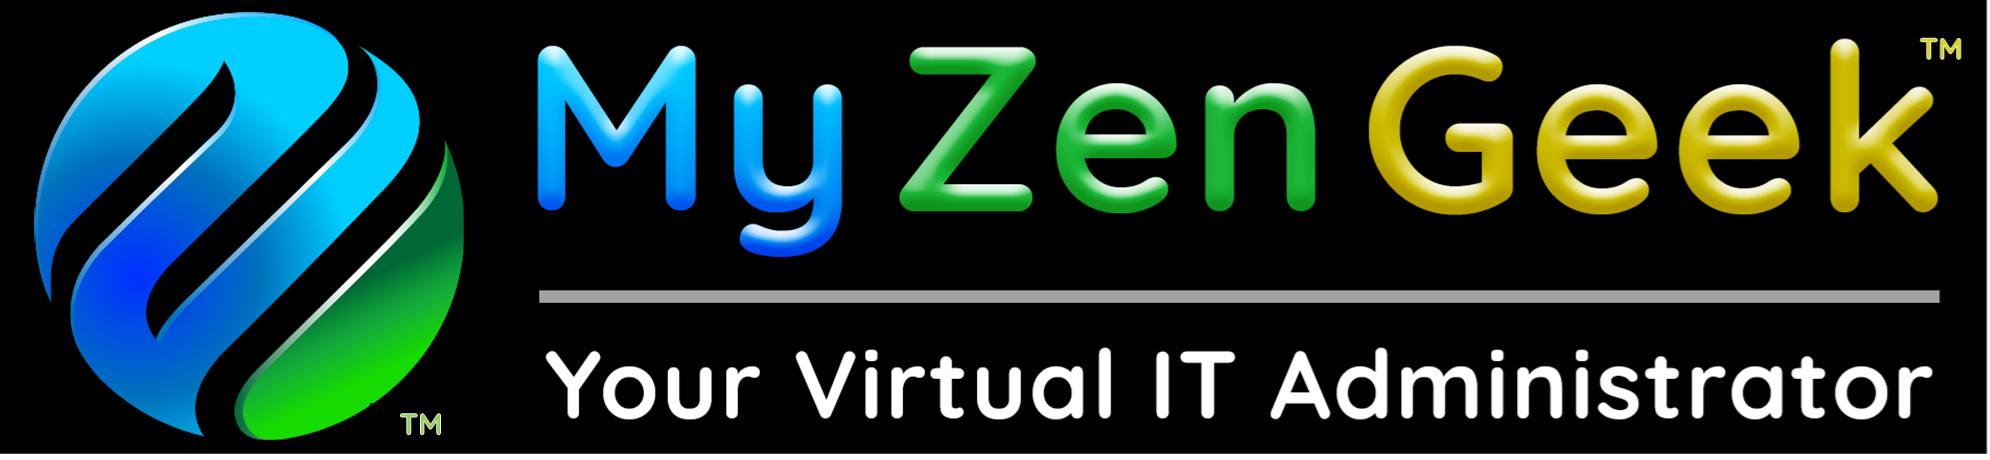 My Zen Geek - Your Virtual IT Administrator - Friendly Remote Service - Based in the USA and Europe